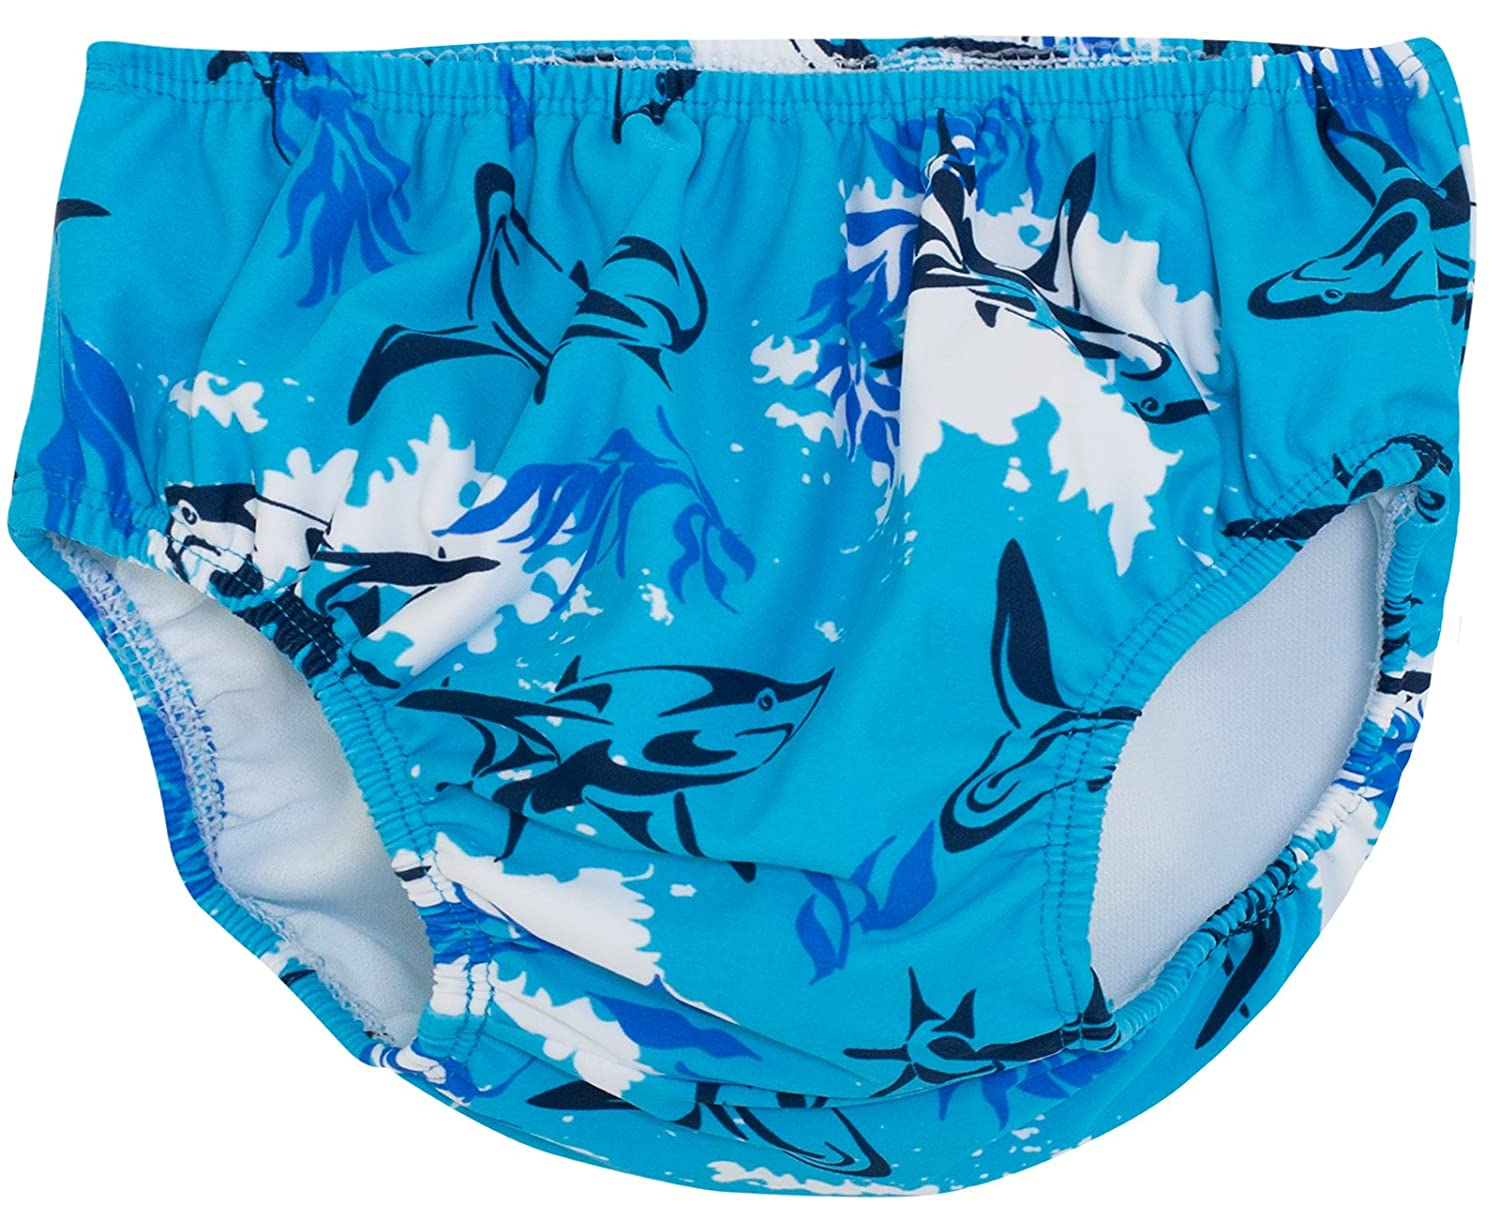 UPF 50 Tuga Boys Reusable Swim Diapers Sun Protection Swimwear